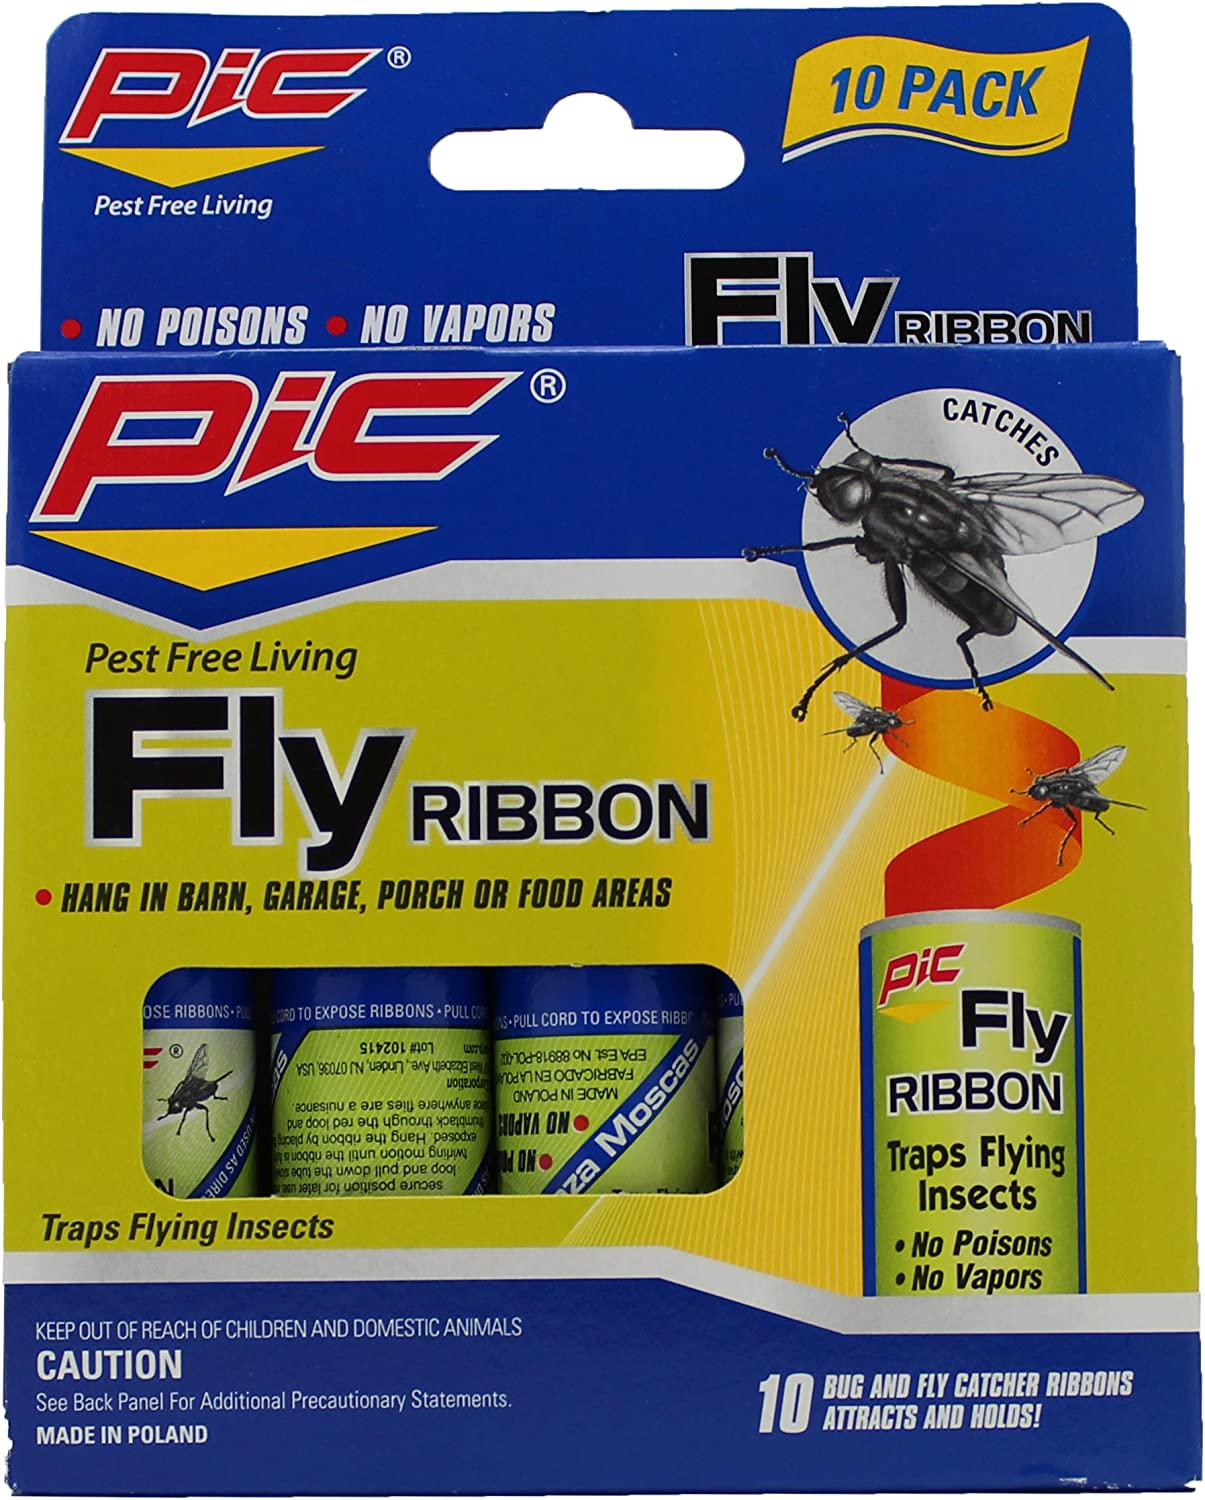 Pic FR10B Sticky Fly Ribbons, 10-Pack : Home Pest Control Traps : Garden & Outdoor